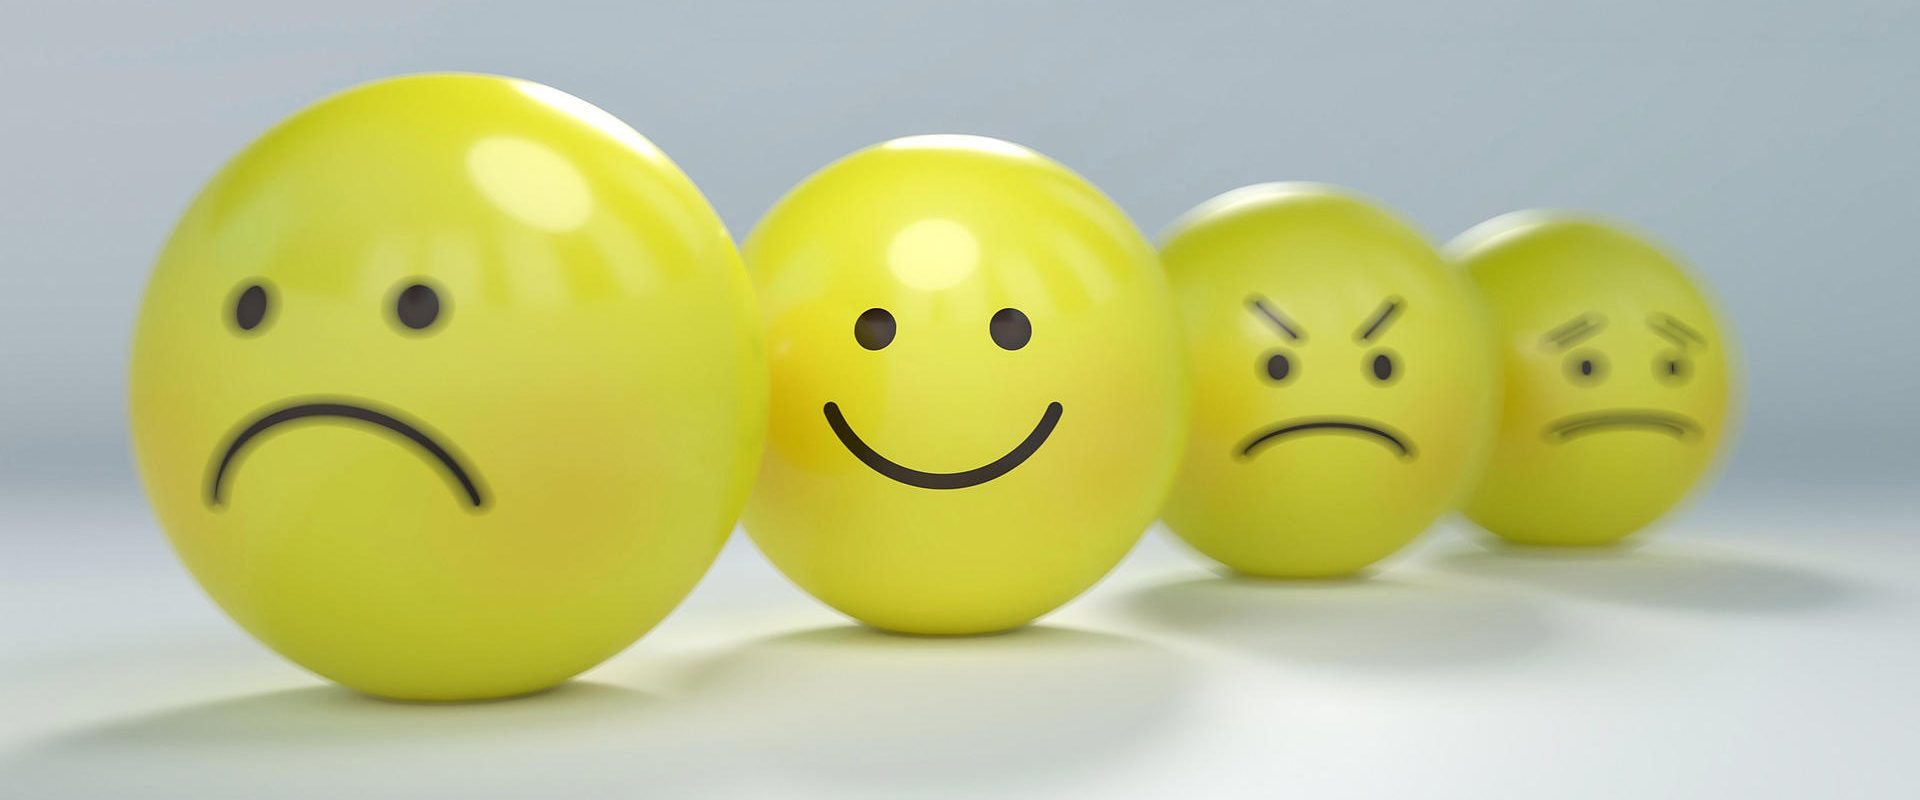 Yellow balls with different facial expression